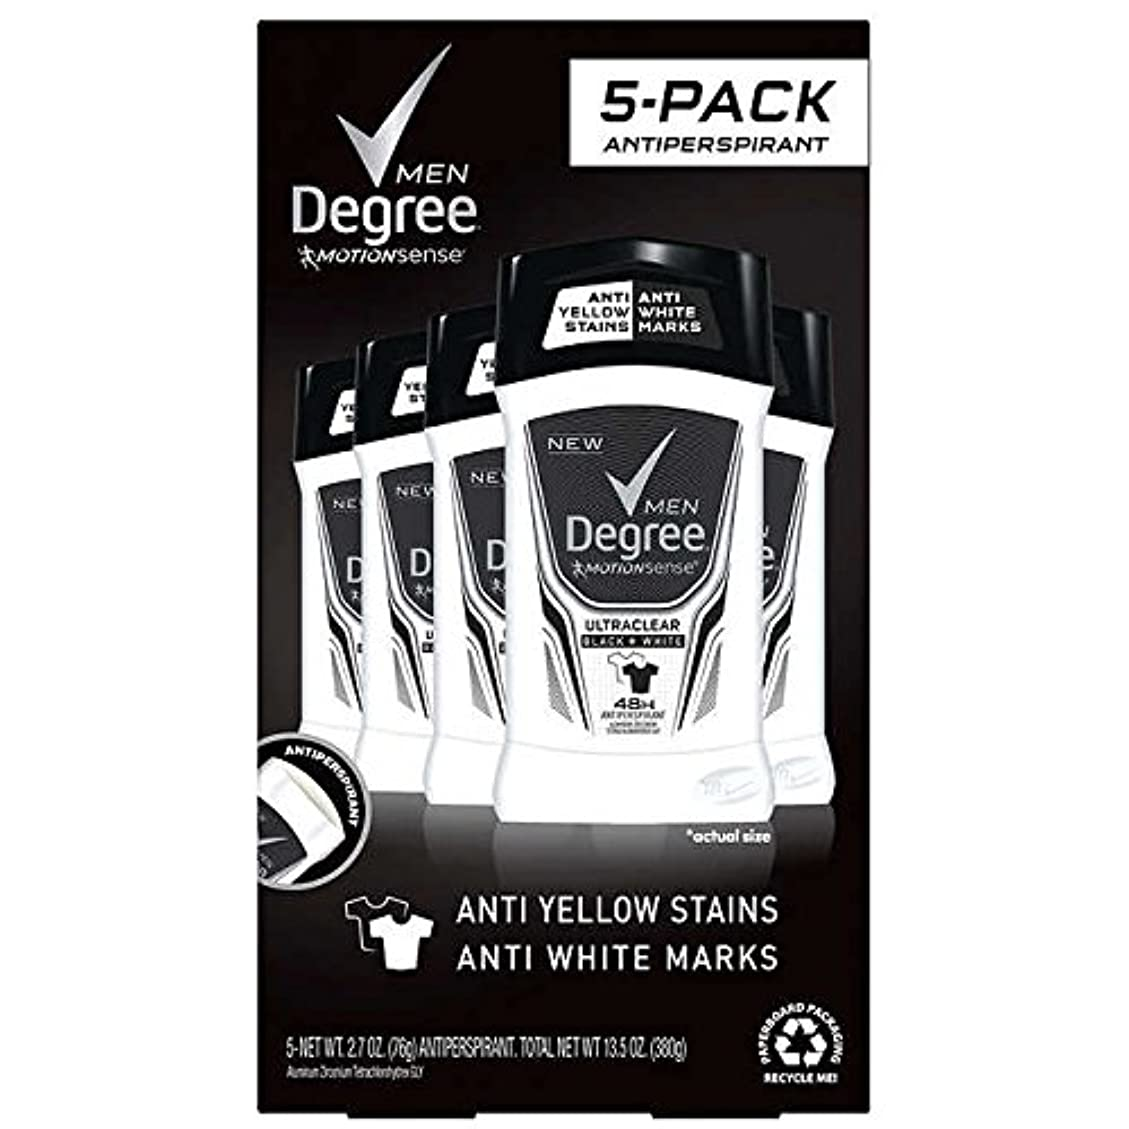 くつろぐ宴会おそらくDegree Men Ultra Clear Black + White Solid Deodorant 2.7oz (76g), 5-pack [並行輸入品]